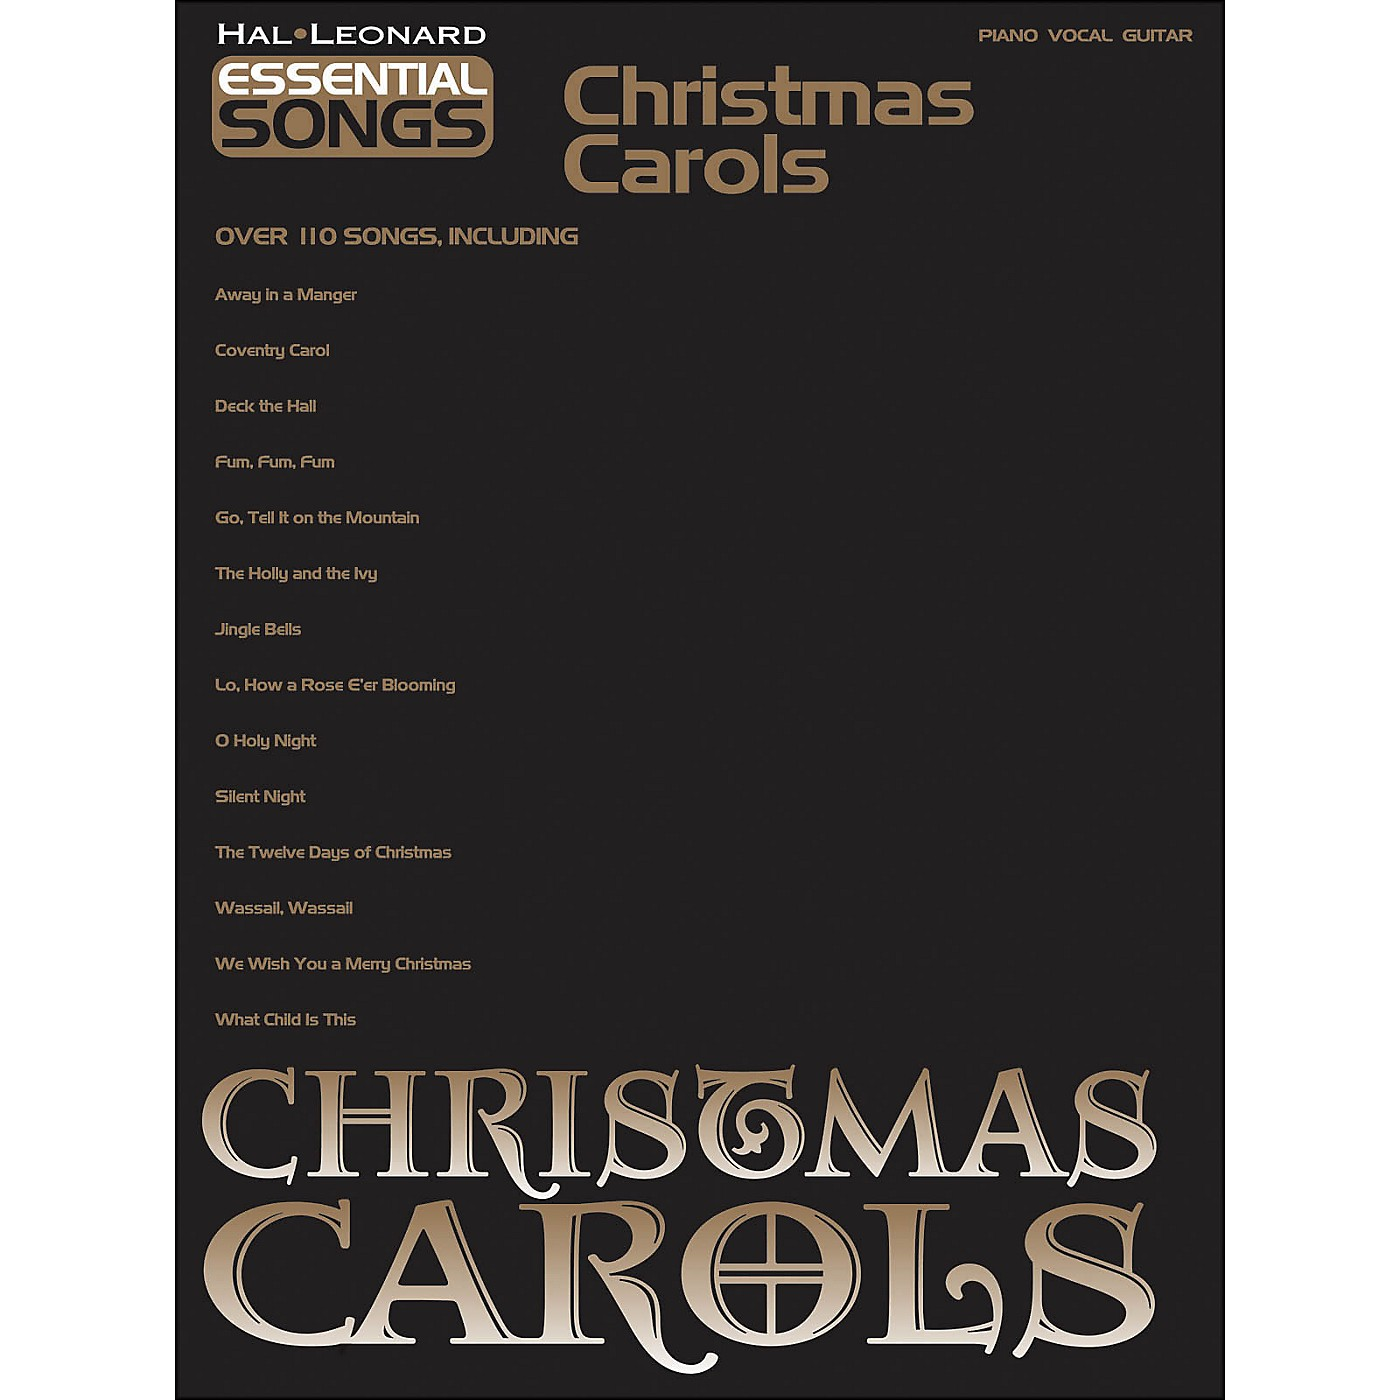 Hal Leonard Essential Songs Christmas Carols arranged for piano, vocal, and guitar (P/V/G) thumbnail